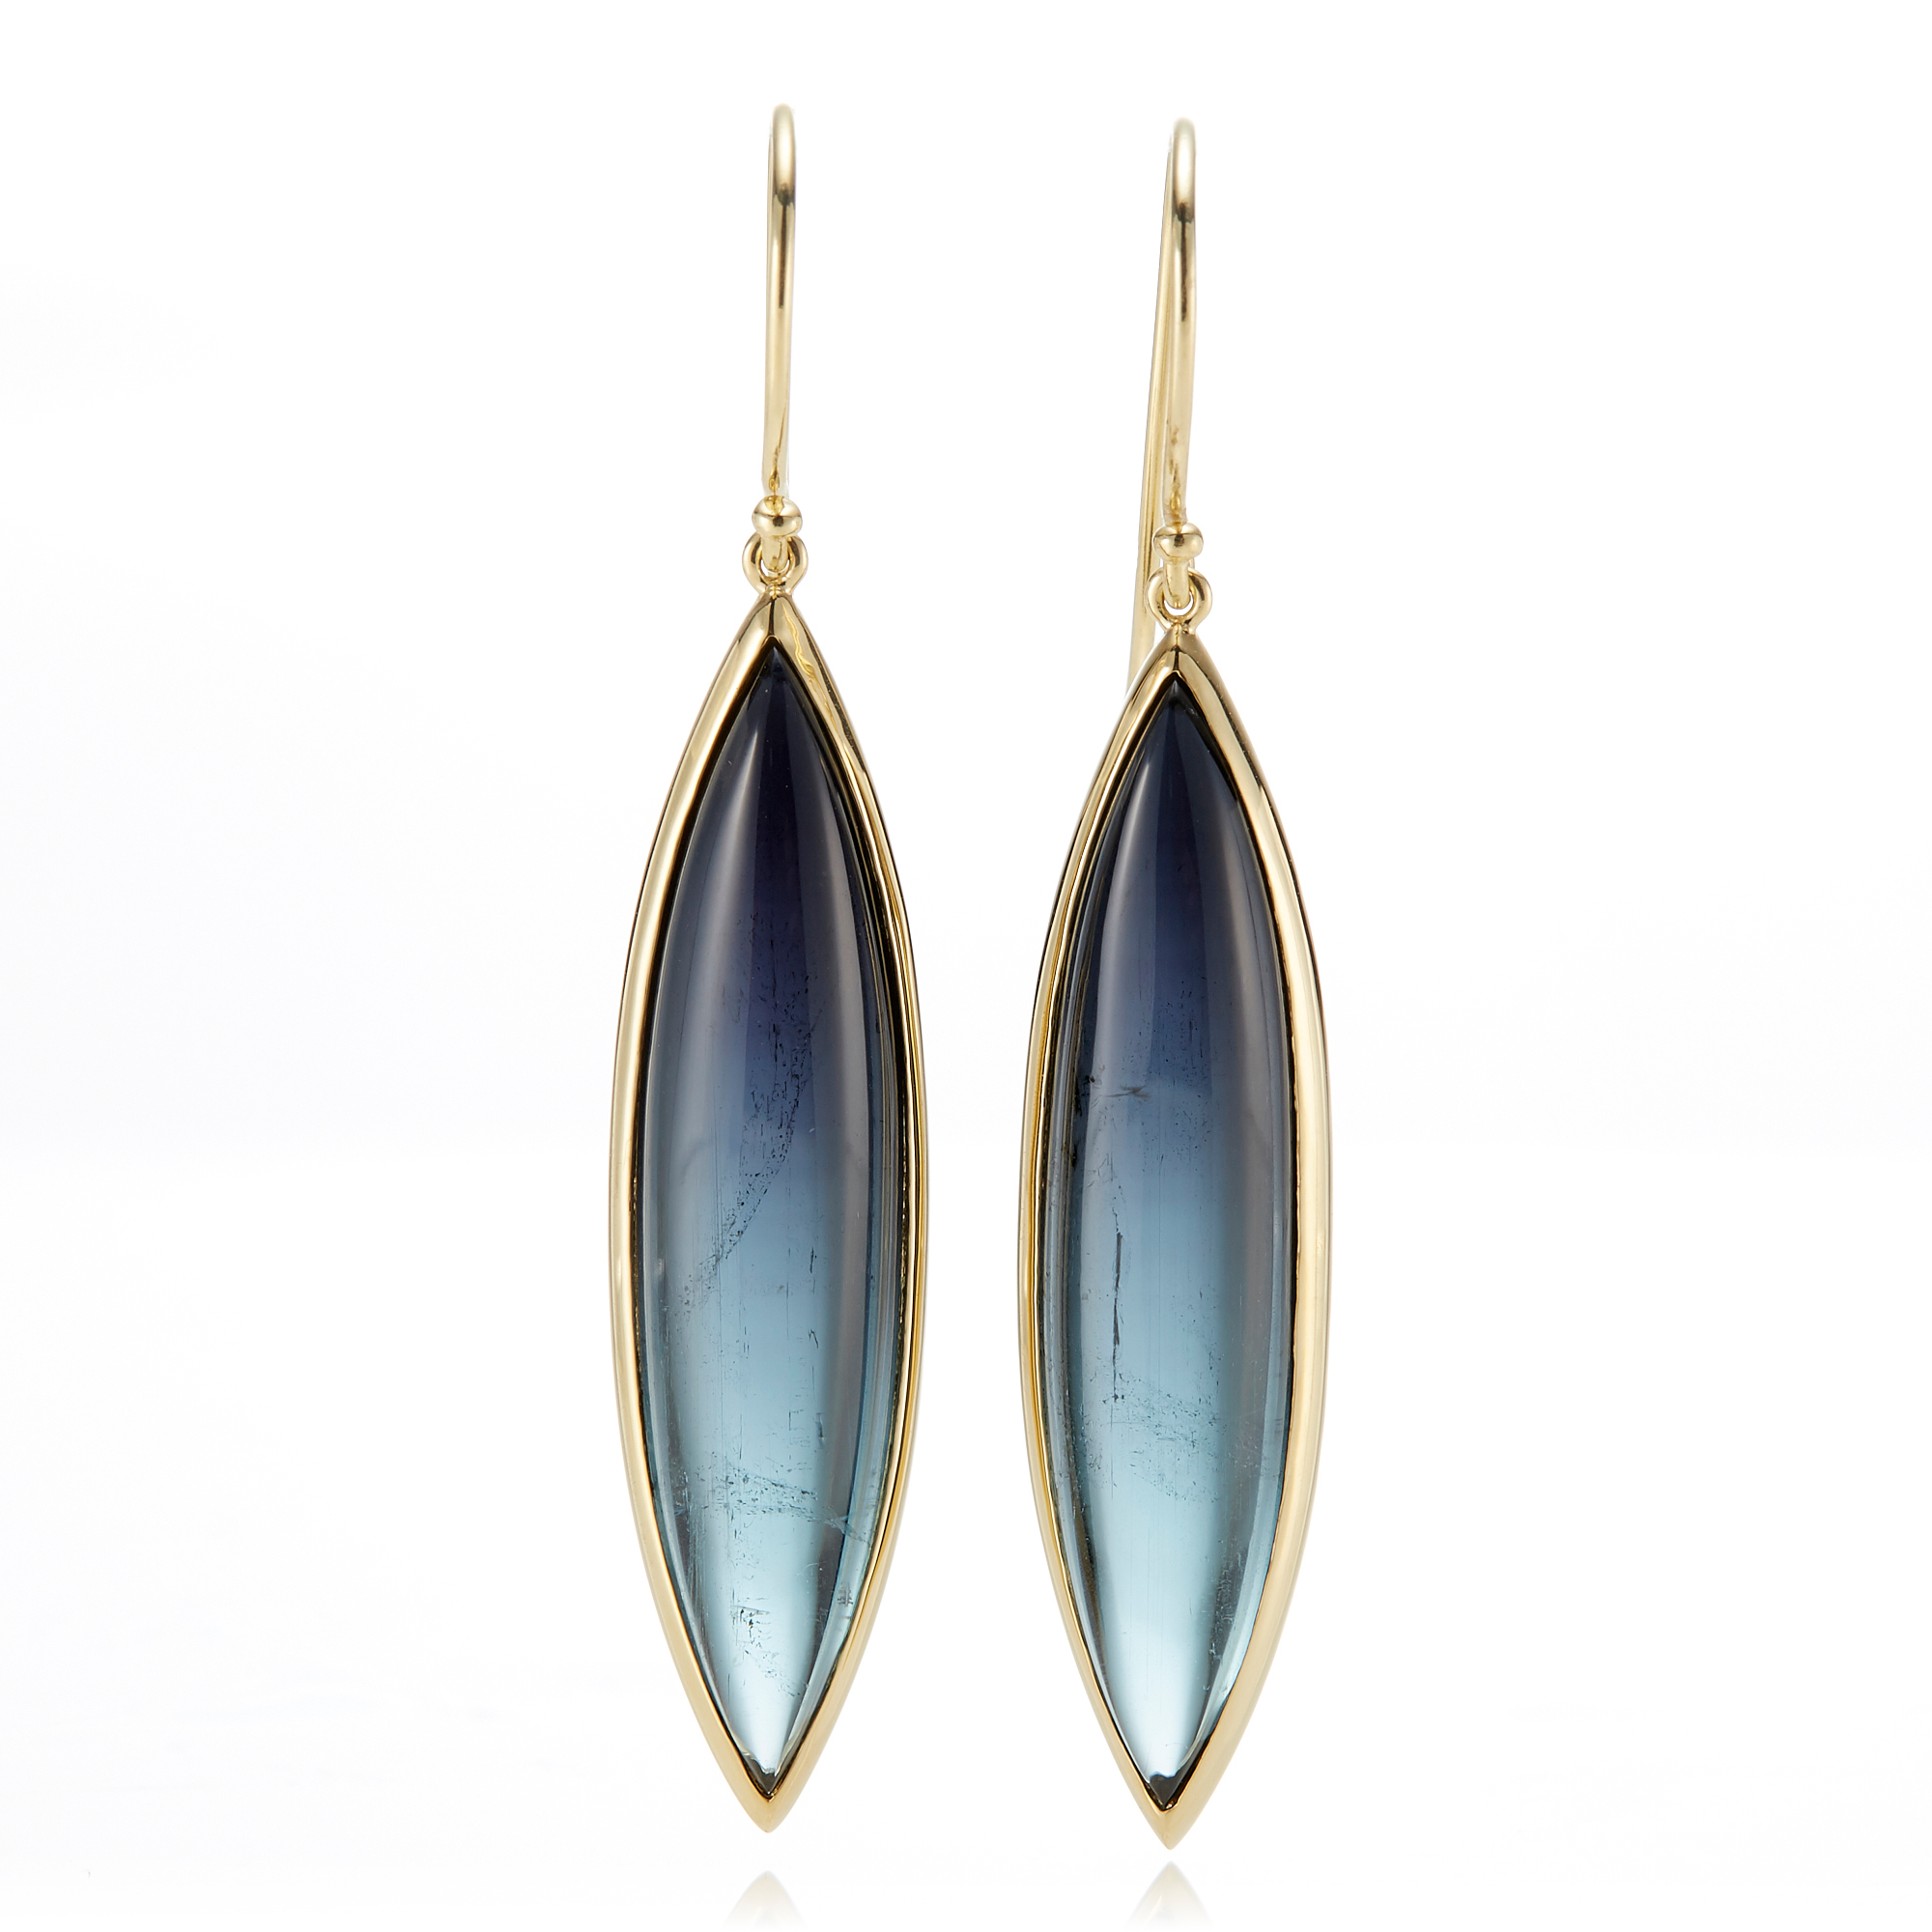 Gump's Blue Tourmaline Navette Drop Earrings